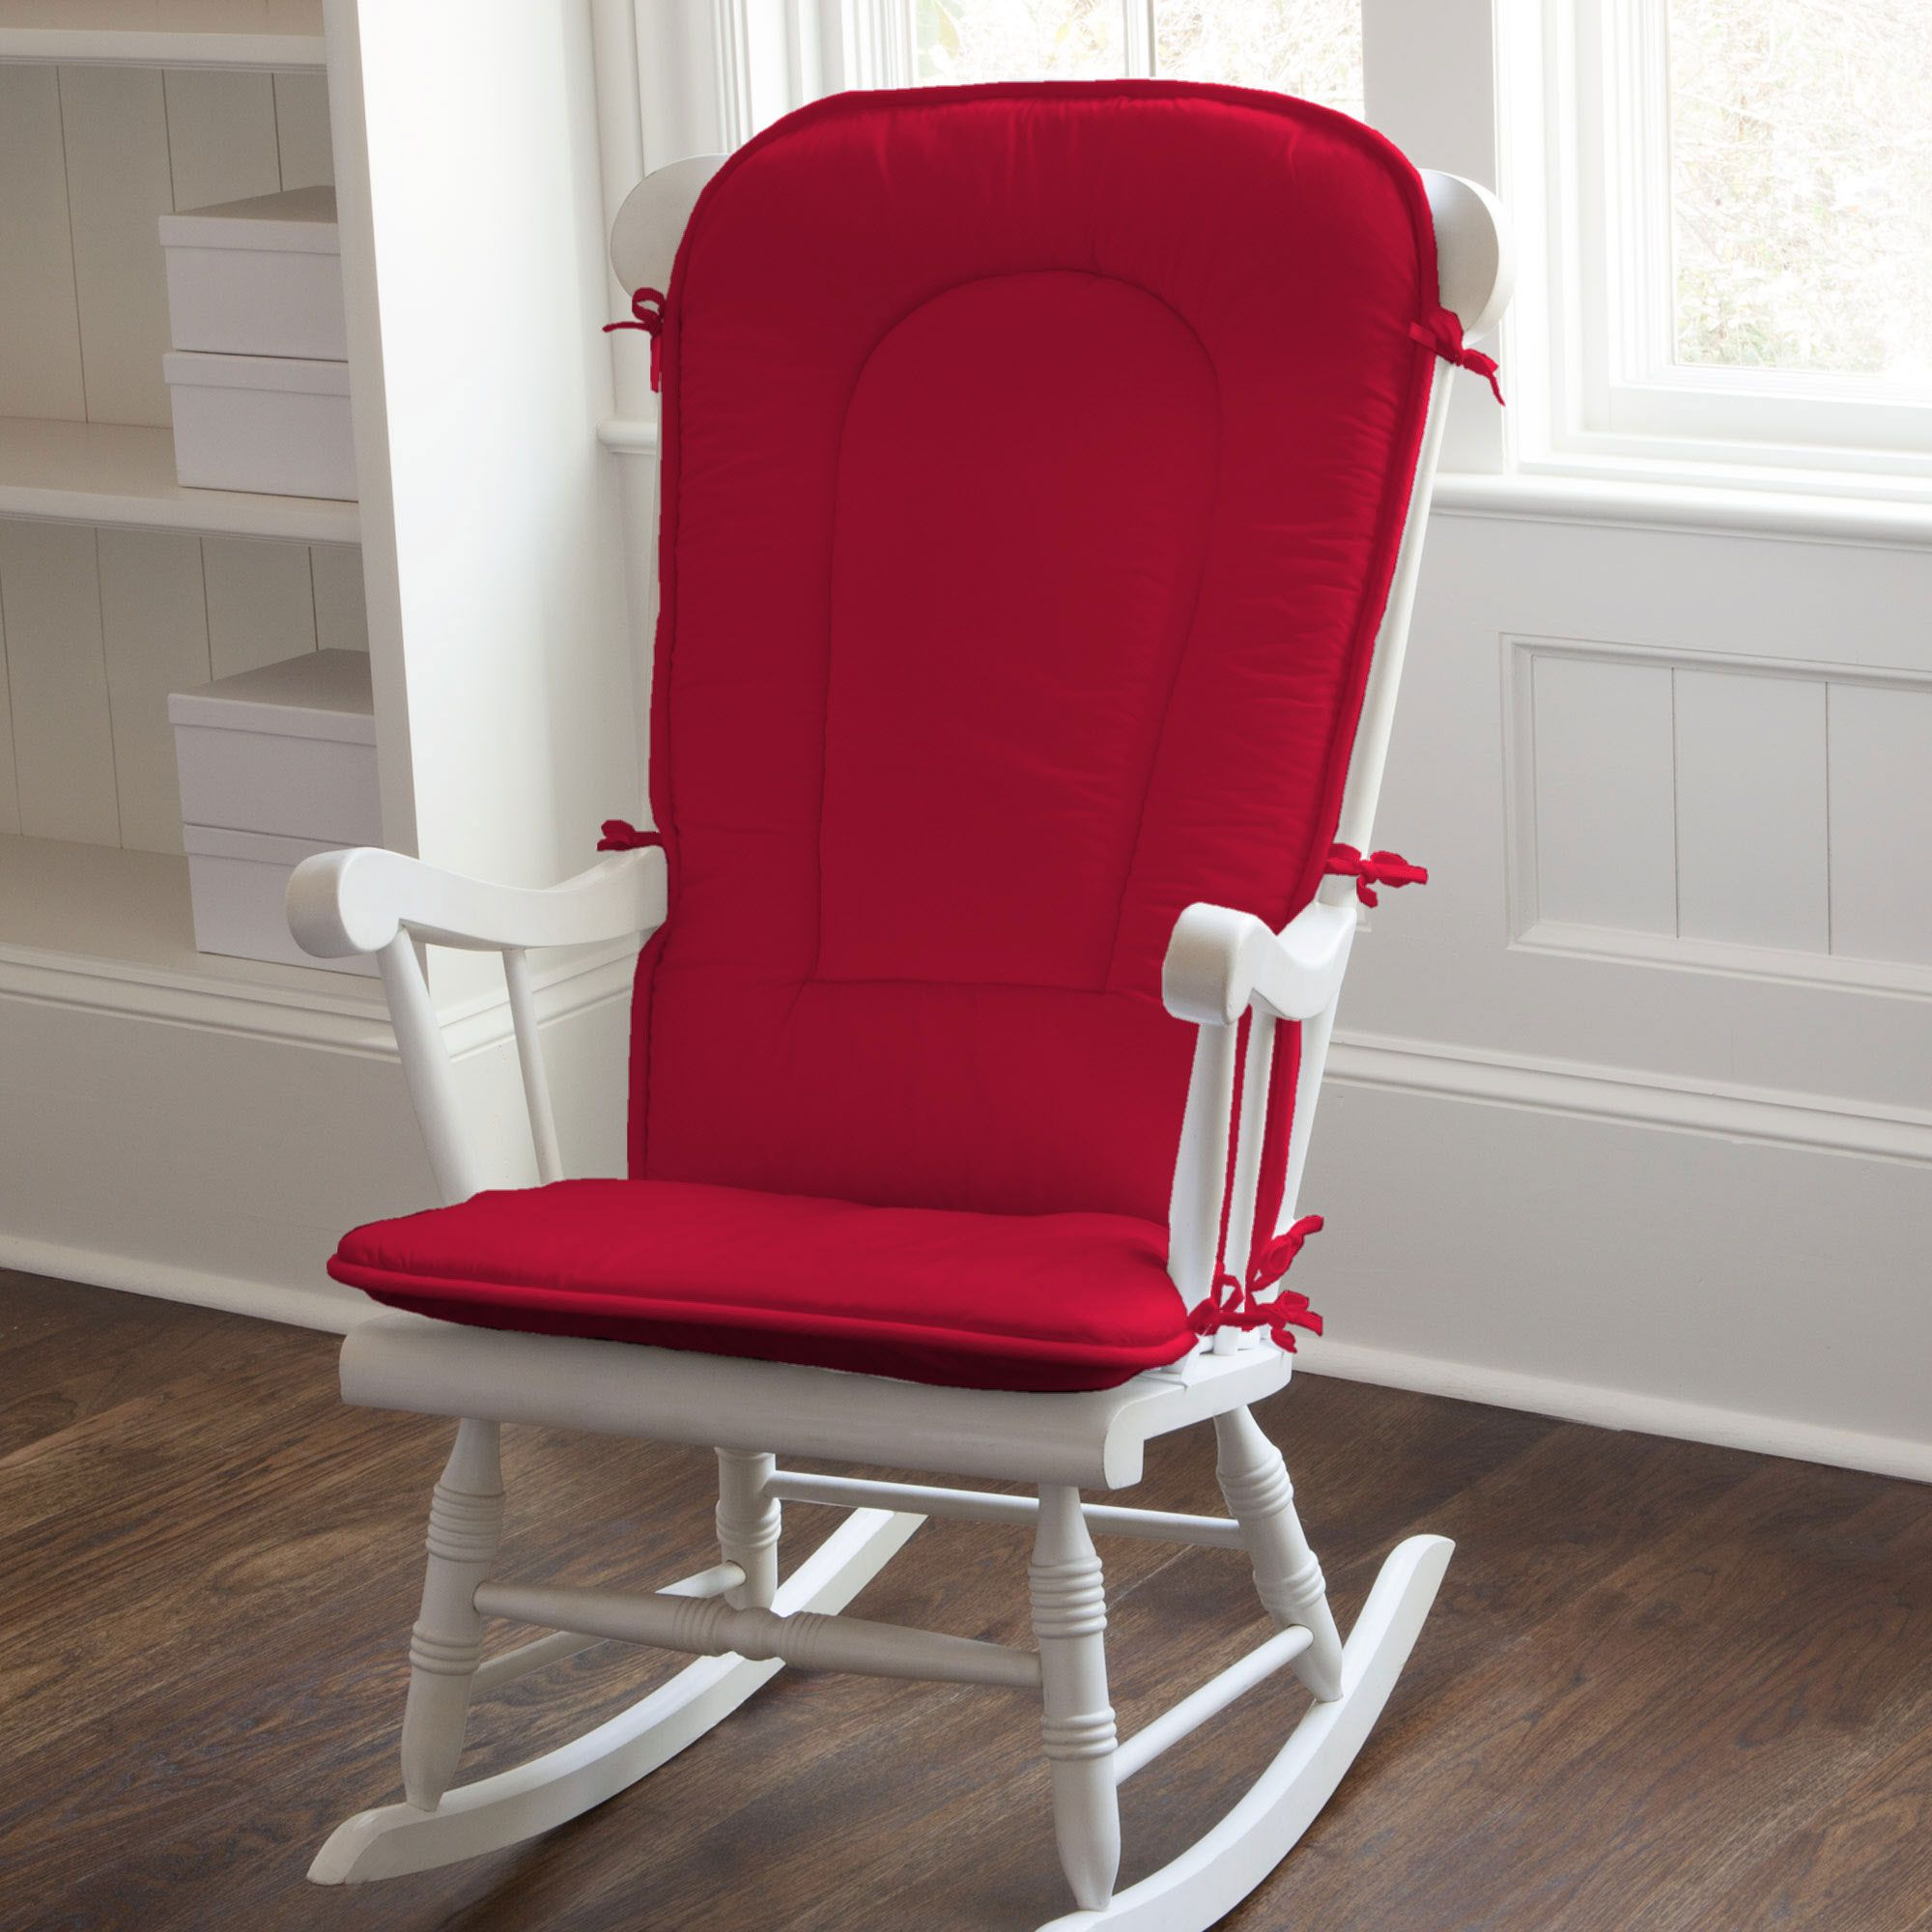 Delicieux Solid Red Rocking Chair Pad #carouseldesigns